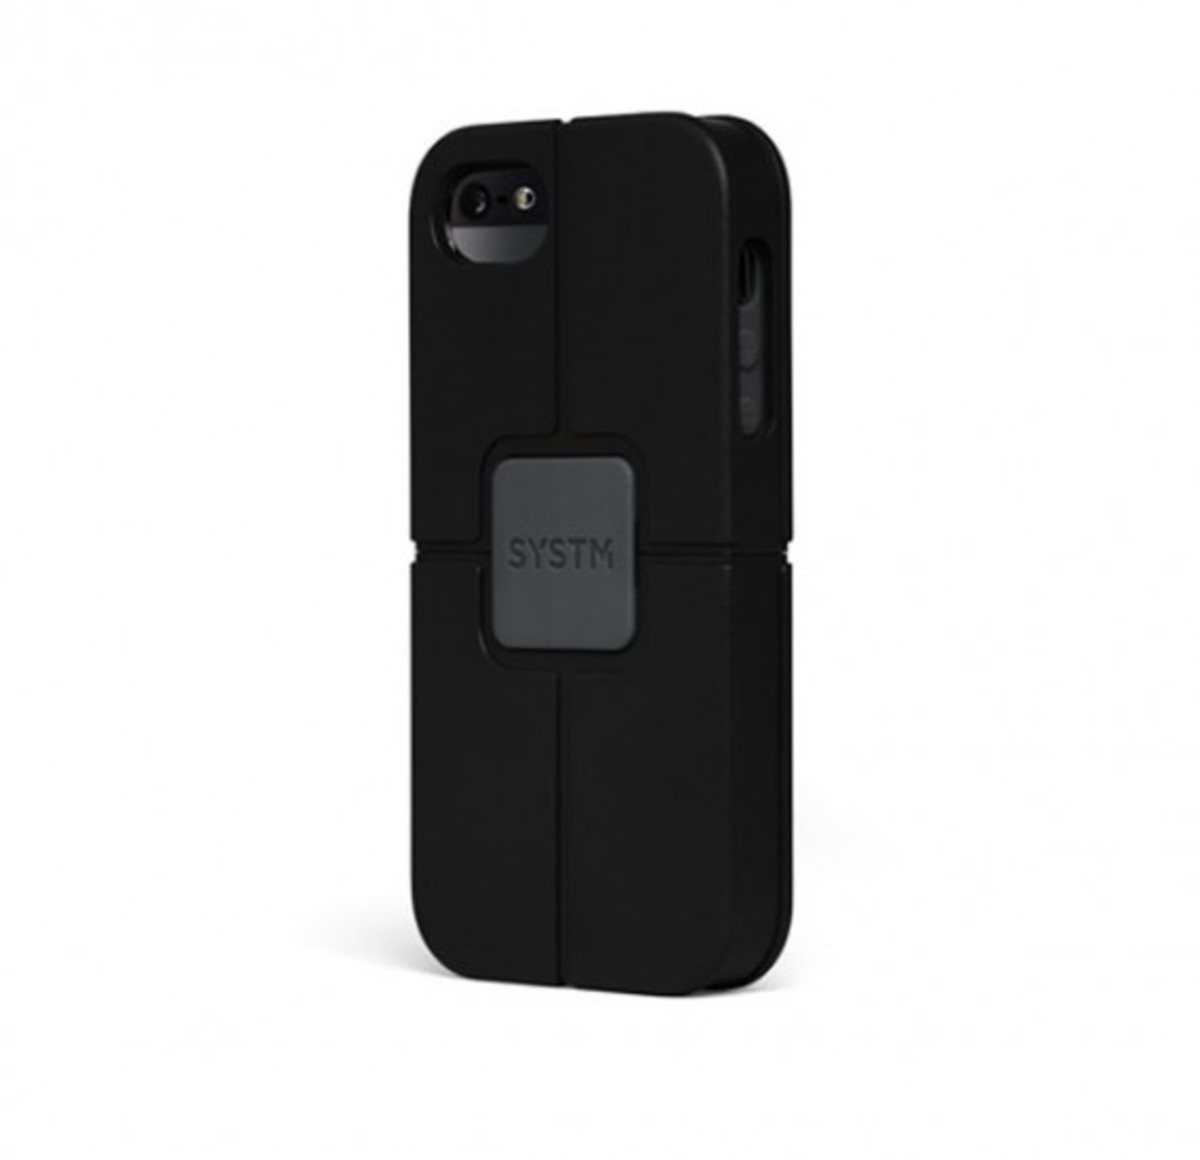 systm-iphone-5-cases-03